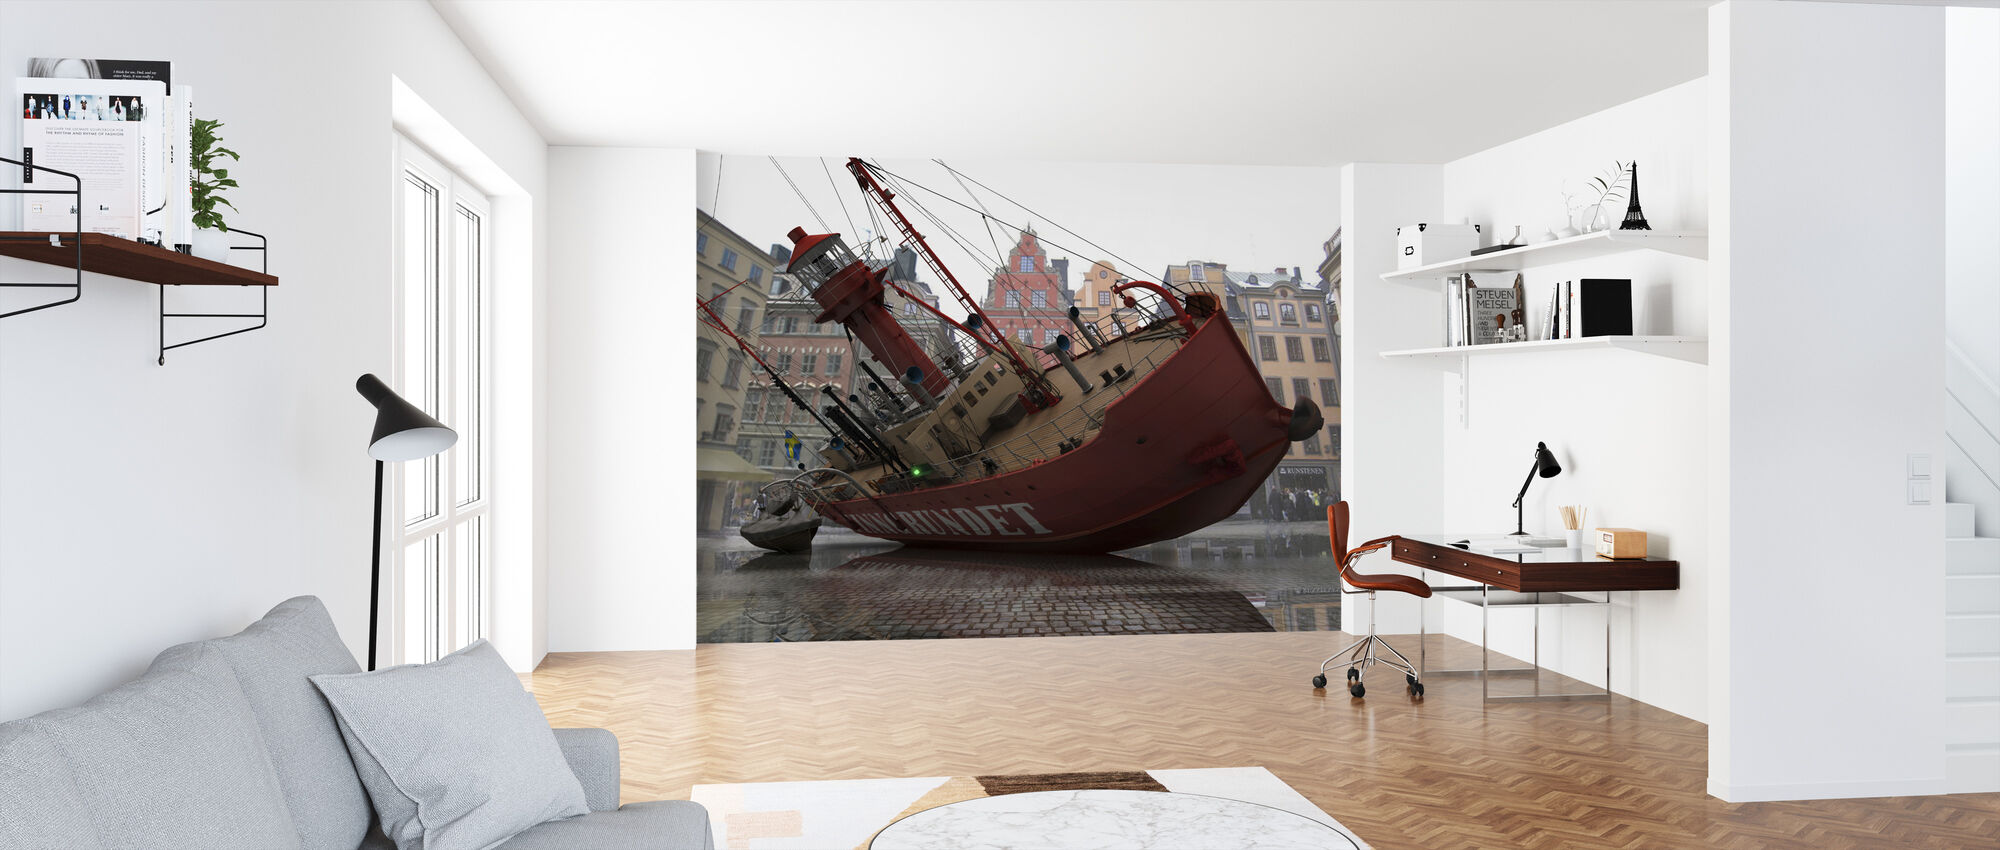 Boat in Old Town - Wallpaper - Office